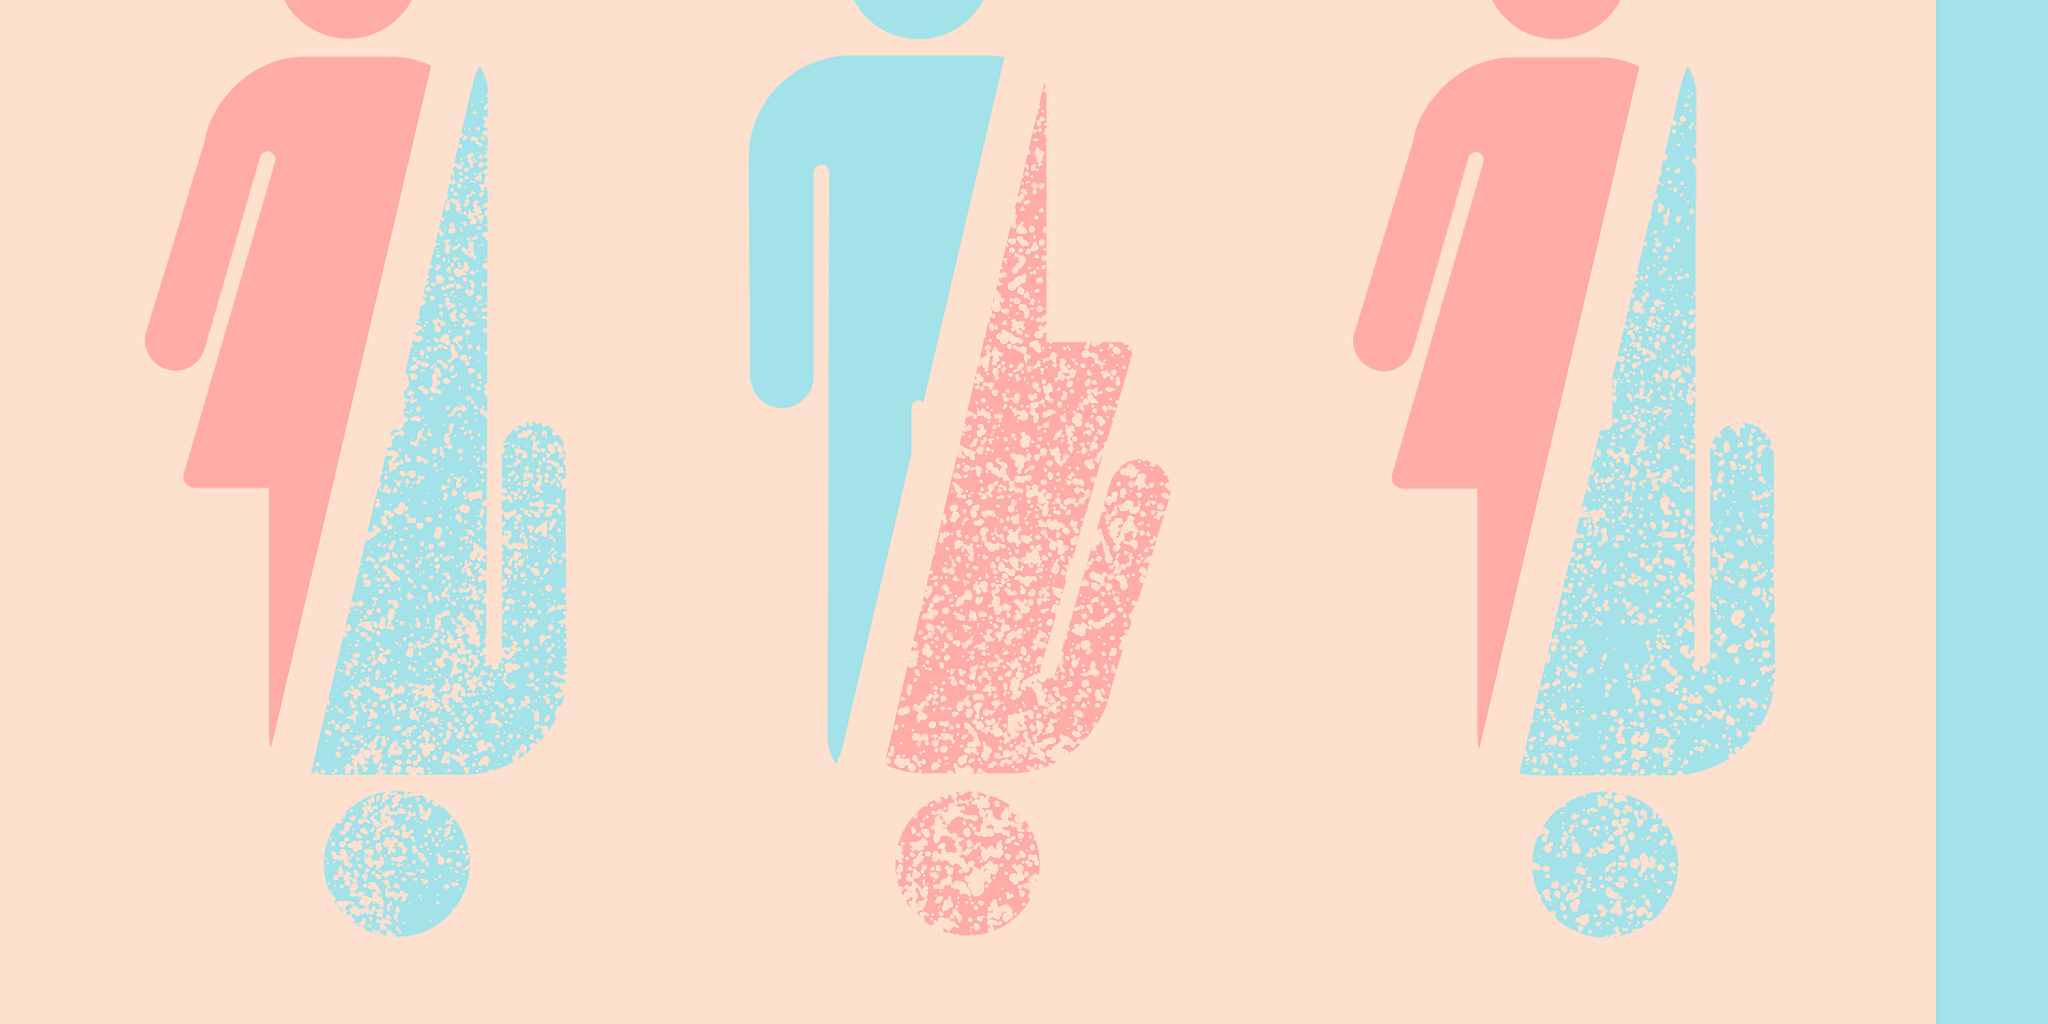 I'm a Teen Who Is Nonbinary: Here's What I Wish Parents Would Know About Gender